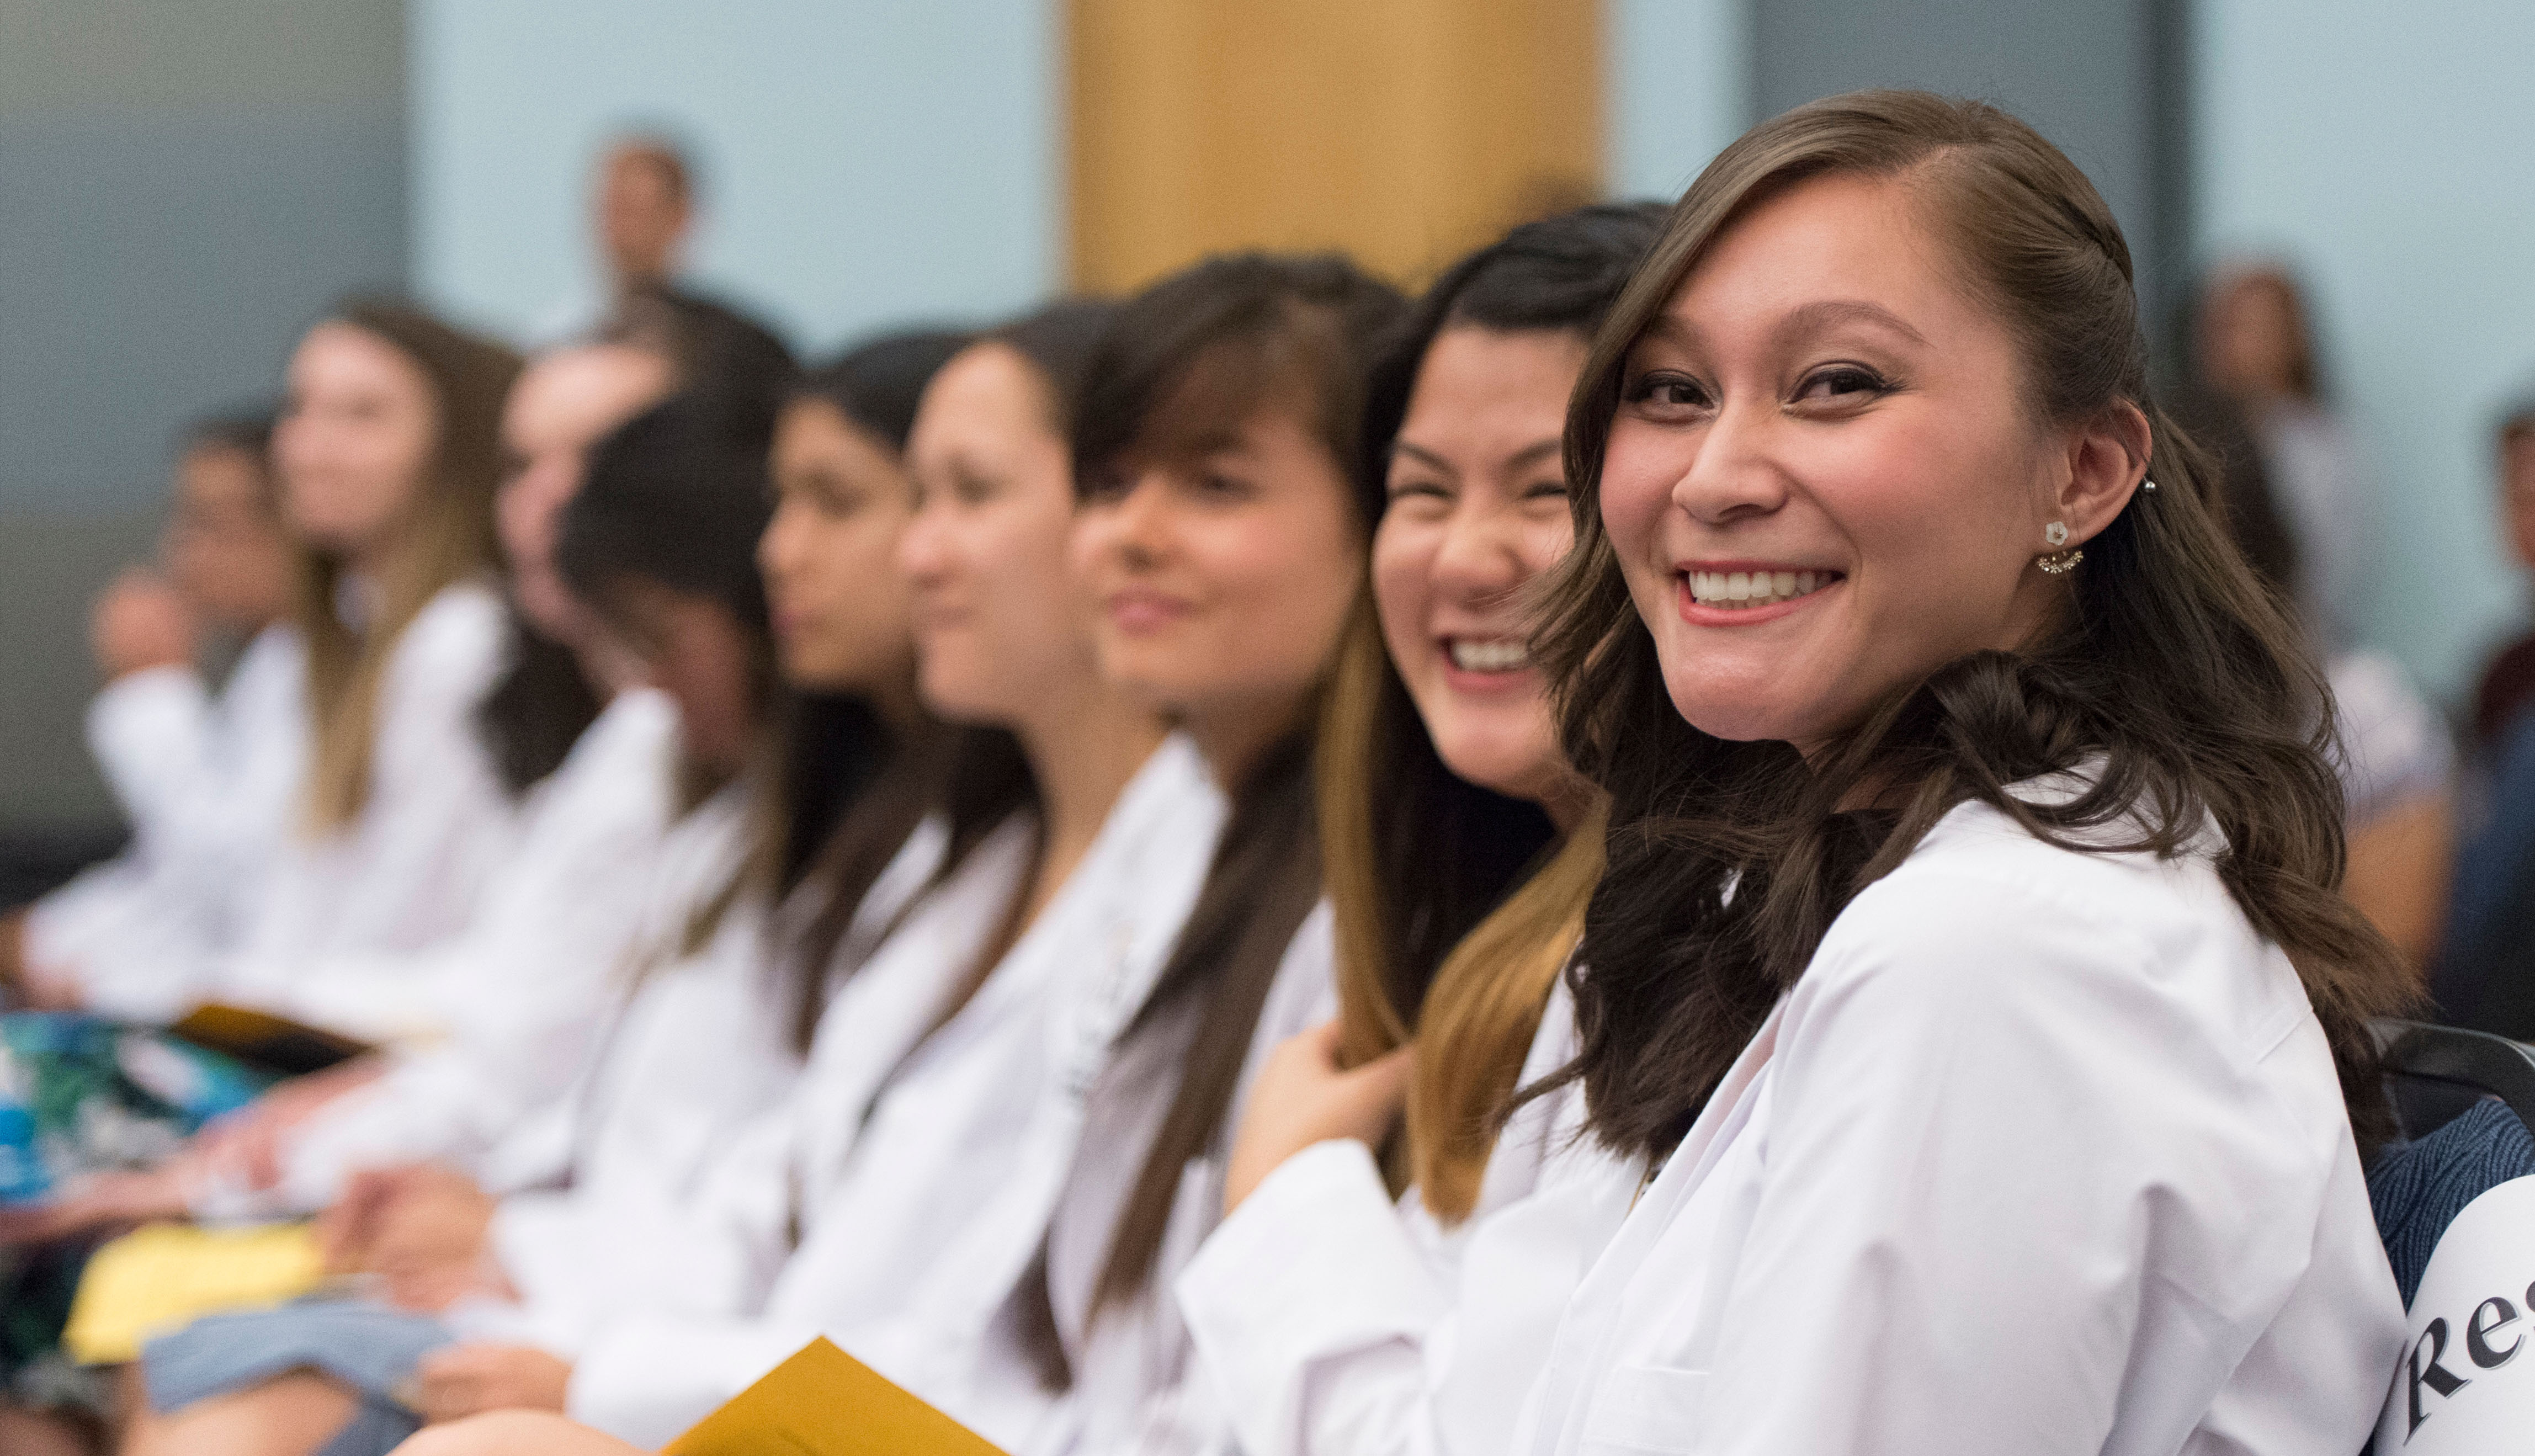 Students sit in their white coats and smile to the camera.